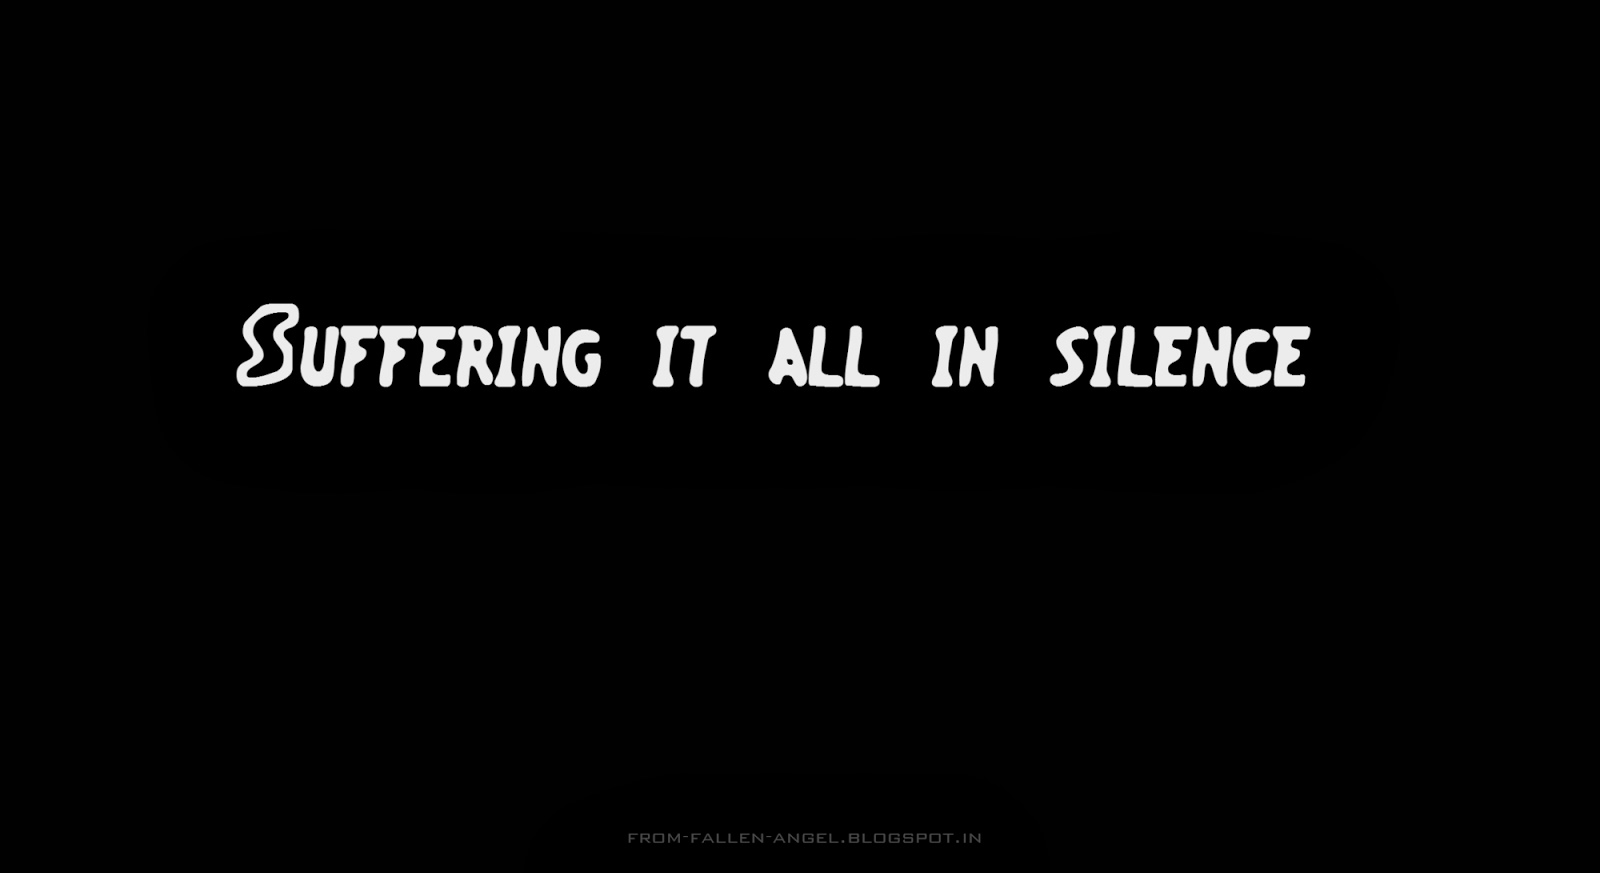 Suffering it all in silence